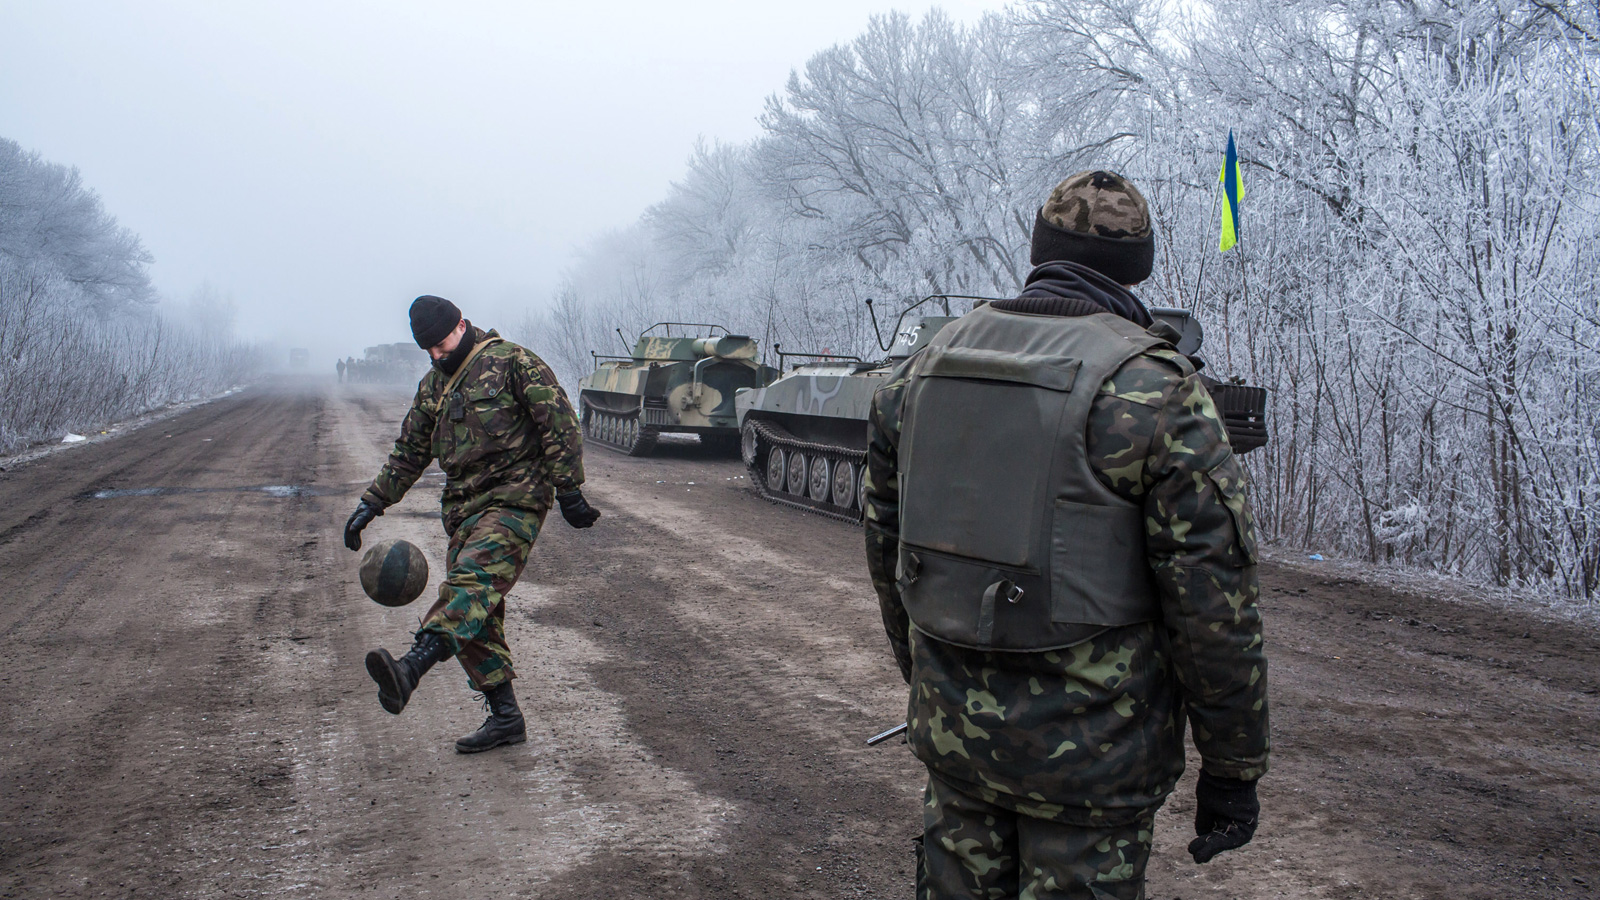 Ukrainian soldiers play football on the road leading to the embattled town of Debaltseve on February 15, 2015 outside Artemivsk, Ukraine